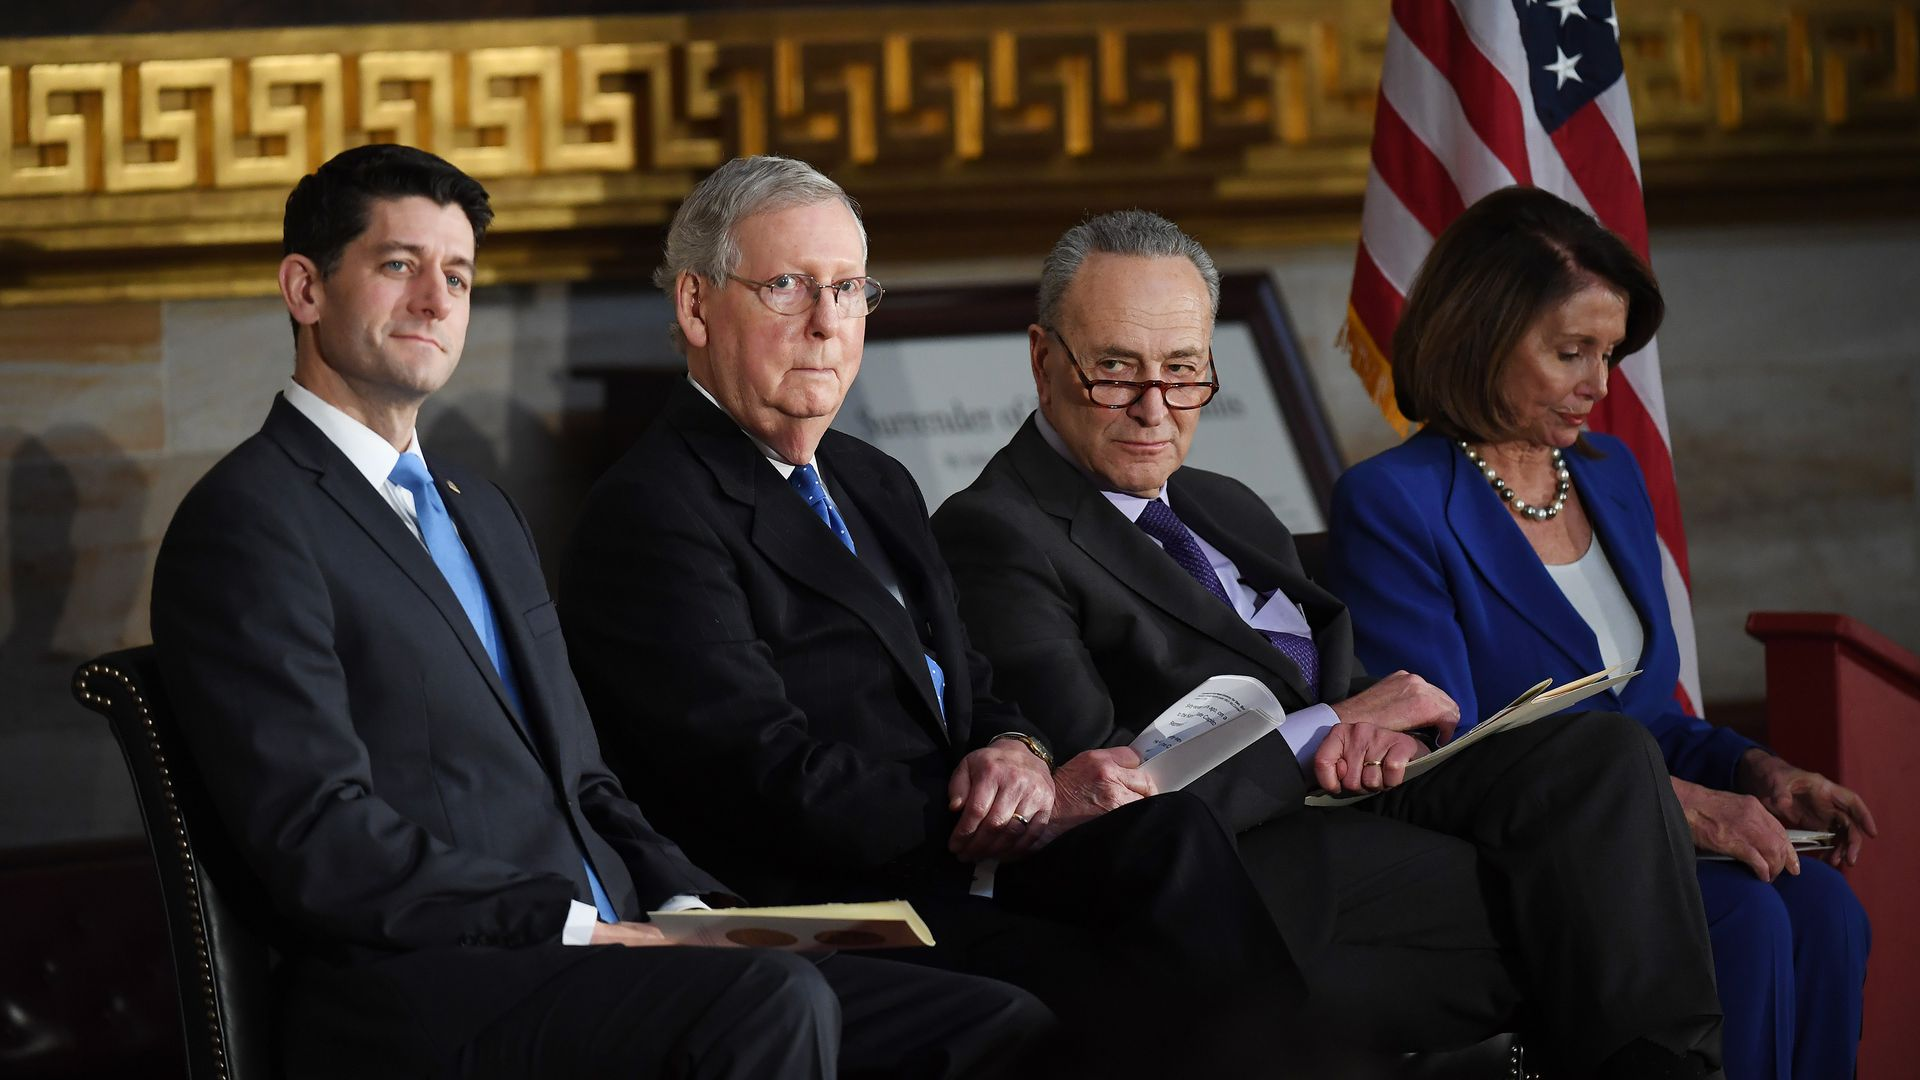 Paul Ryan, Mitch McConnell, Chuck Schumer and Nancy Pelosi